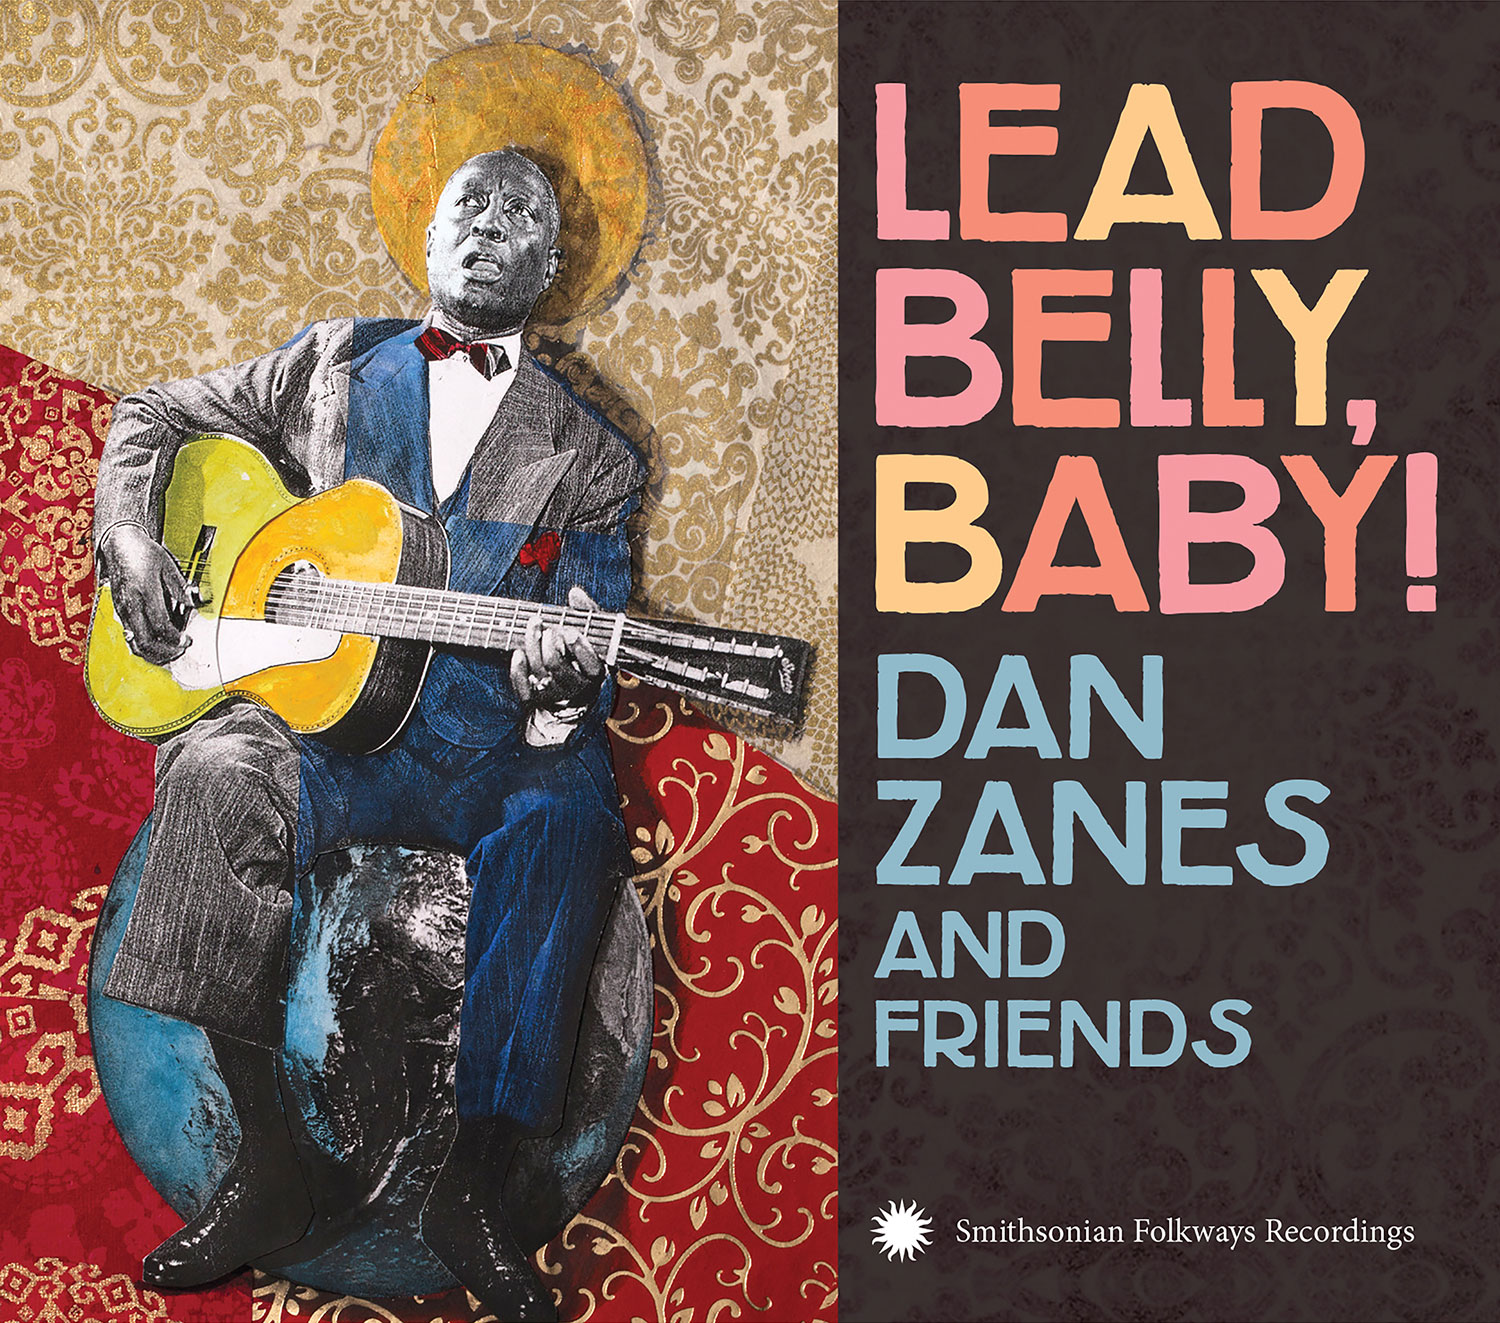 Lead Belly Baby